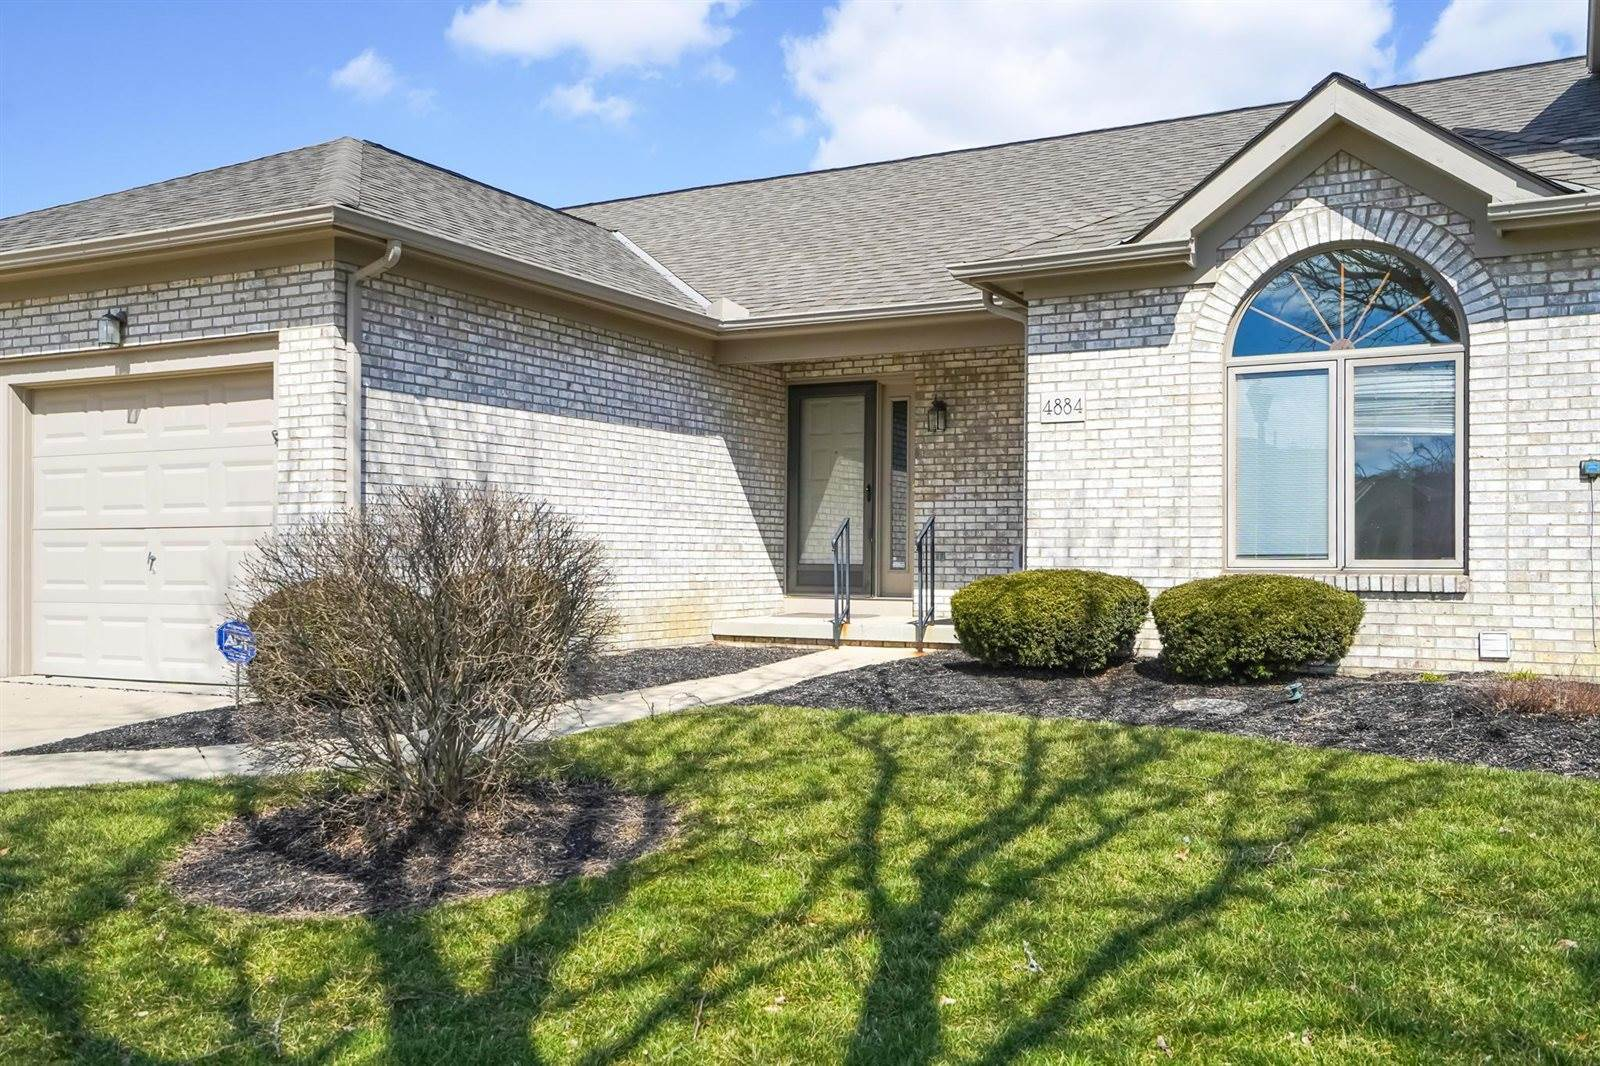 4884 Bay Grove Court, Groveport, OH 43125